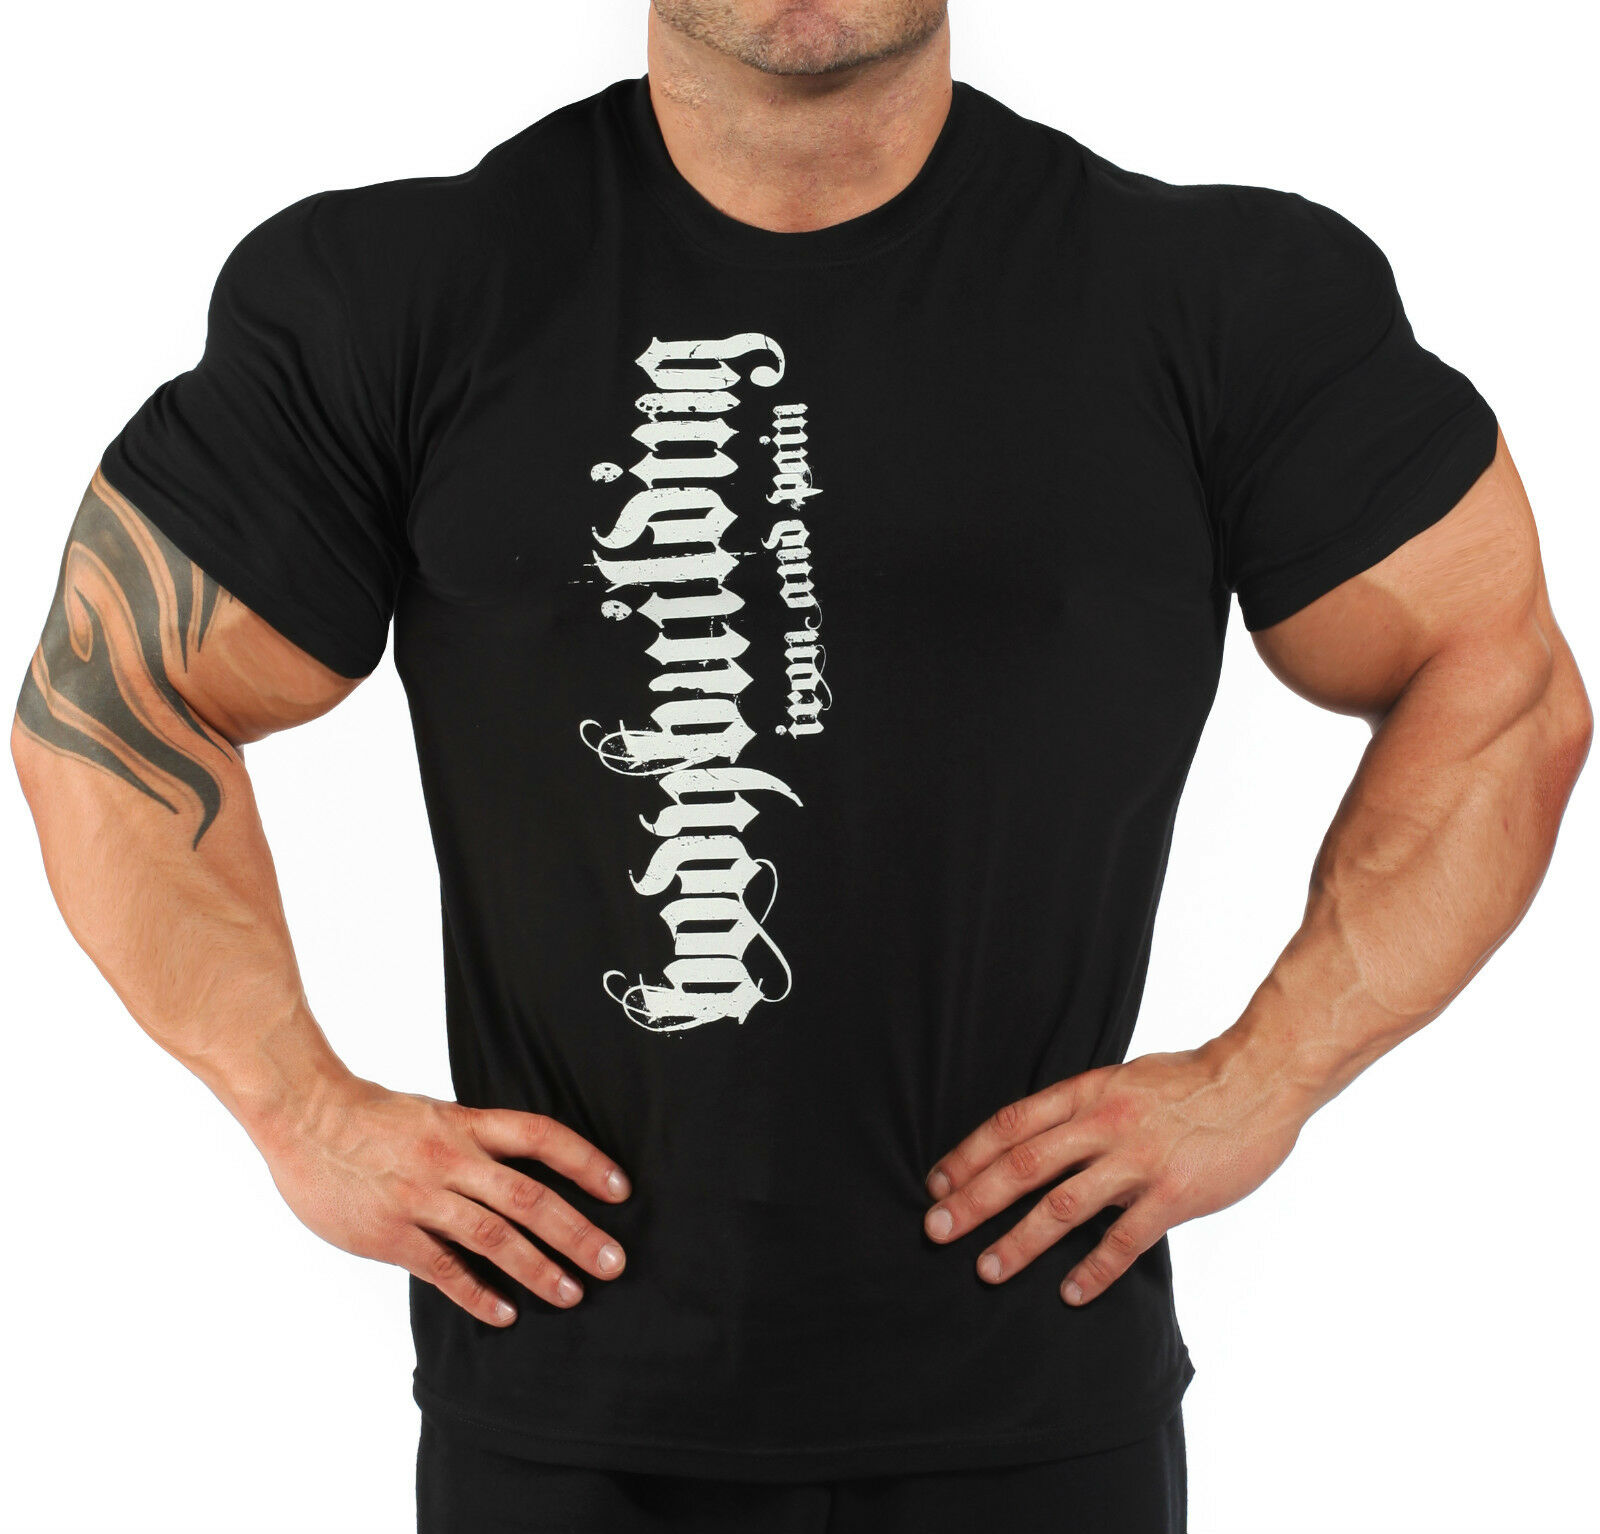 Bodybuilding T Shirt Workout Gym Clothing Black J 103 Ebay